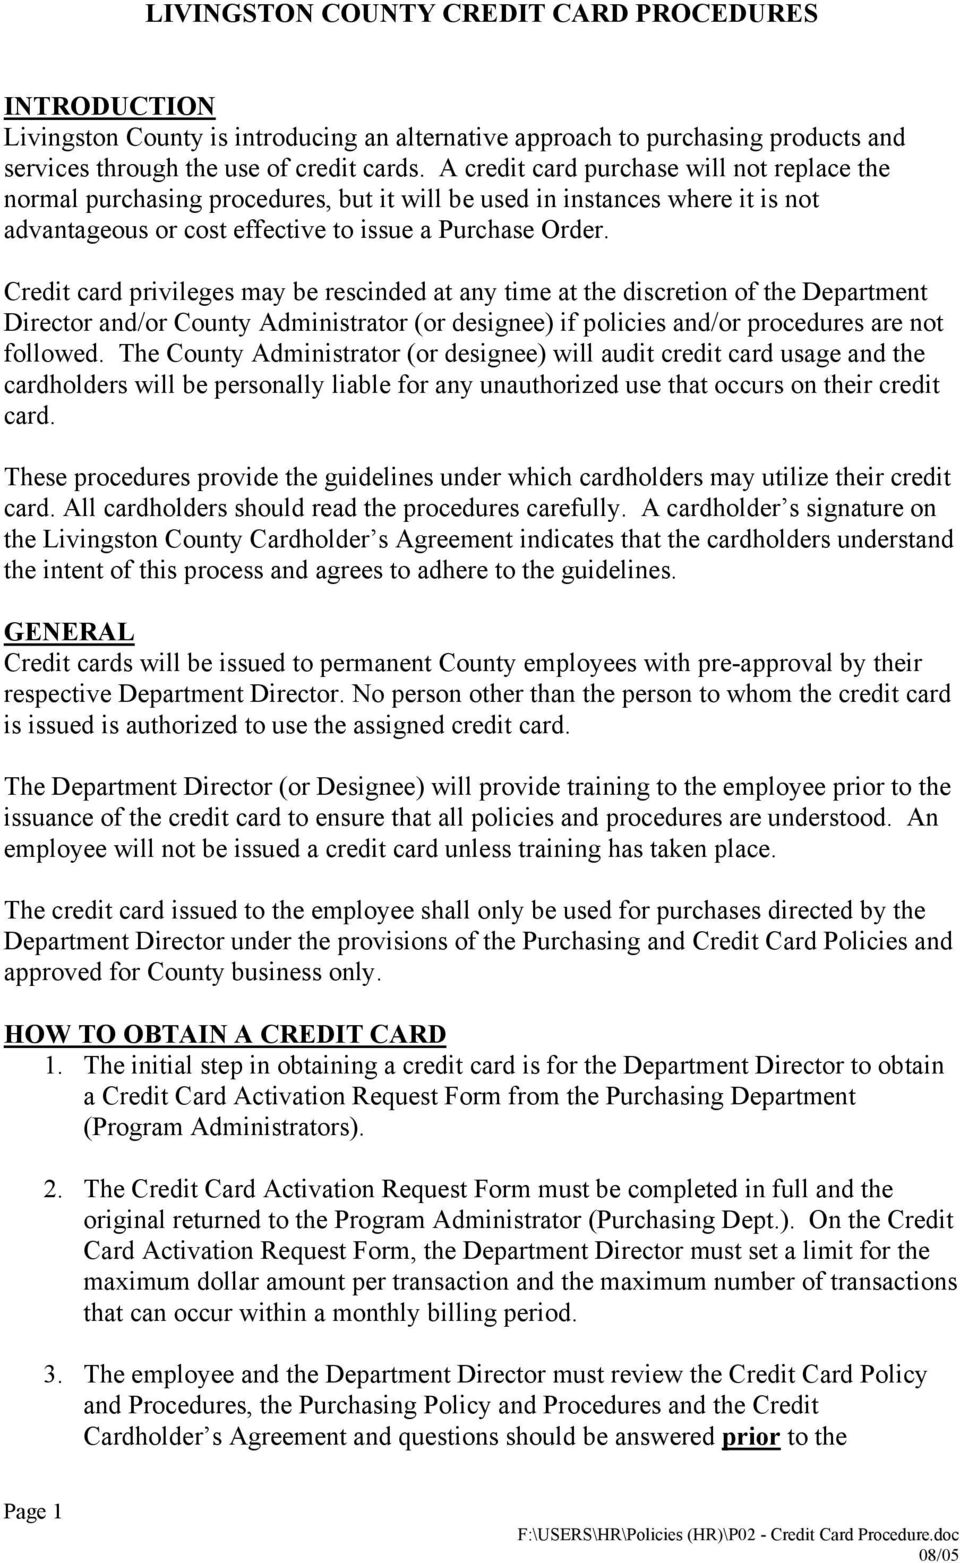 Credit card privileges may be rescinded at any time at the discretion of the Department Director and/or County Administrator (or designee) if policies and/or procedures are not followed.